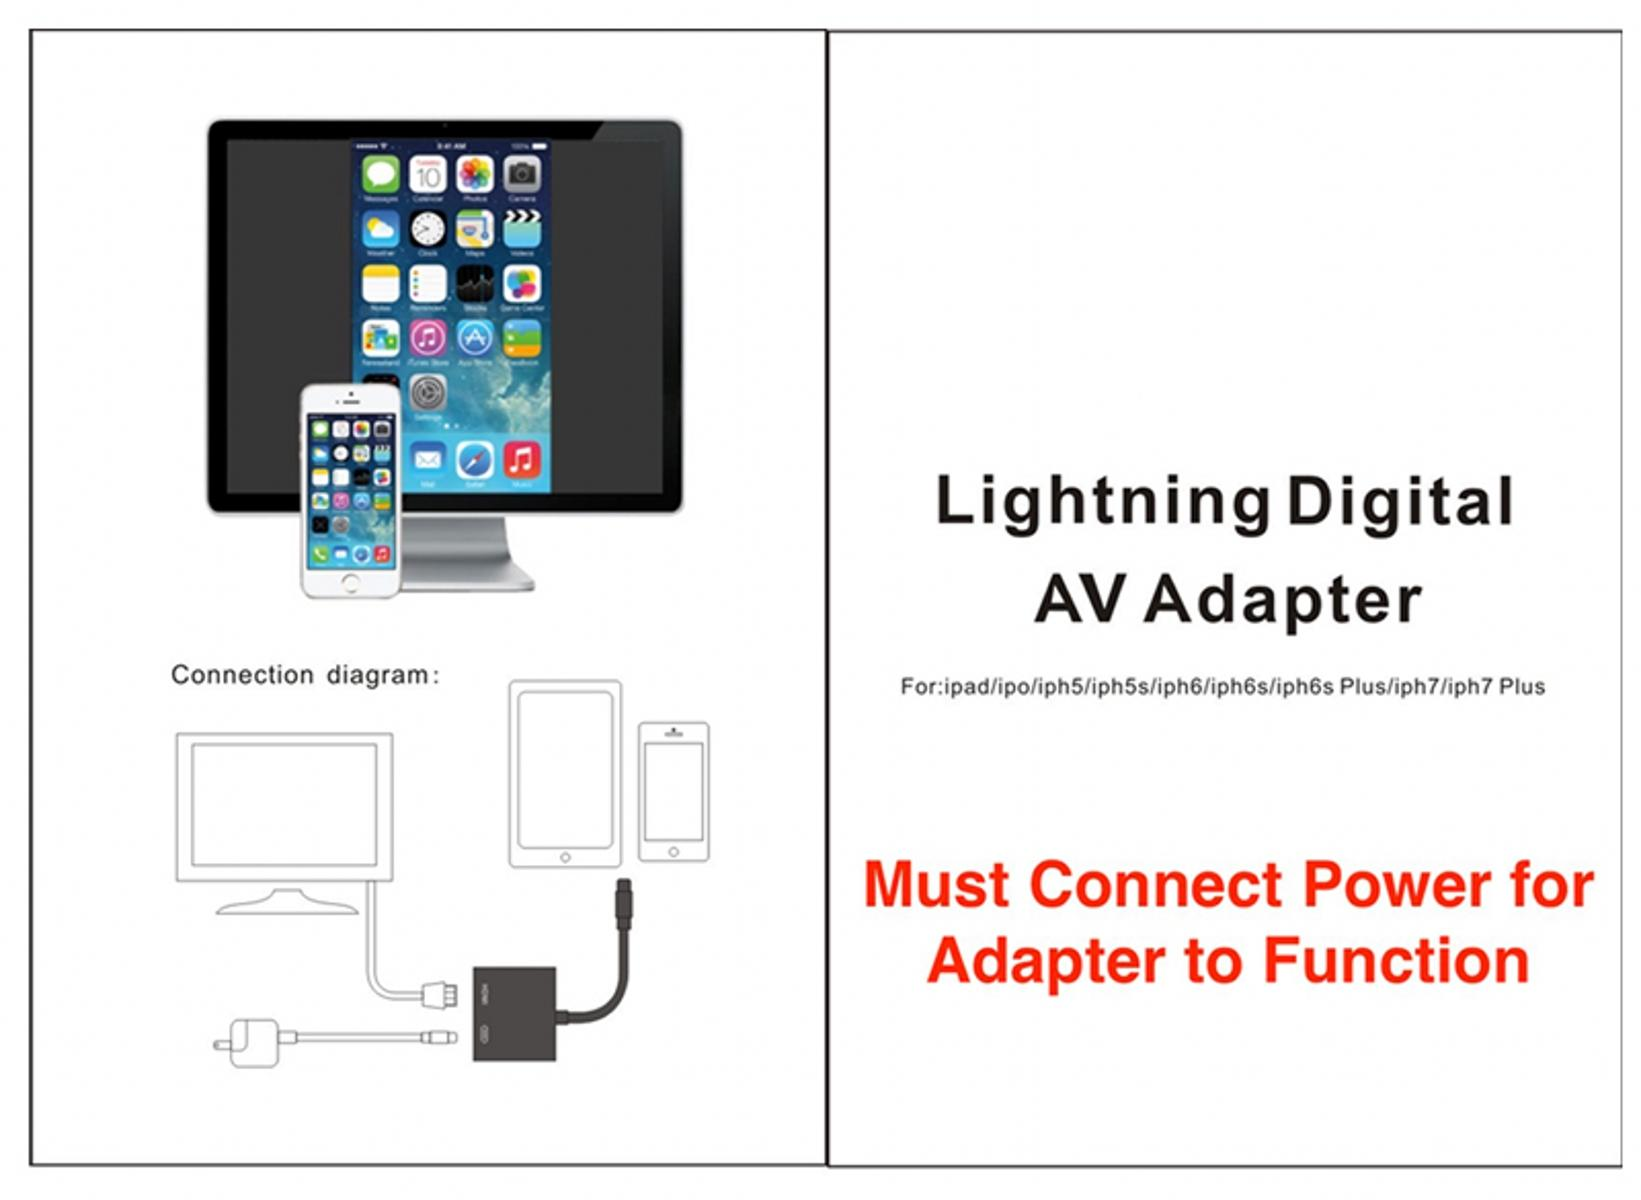 Digital Av Adapter 8 Pin Lightning To Hdmi Port For Iphone X 7 6 Cable Wiring Diagram Product Features